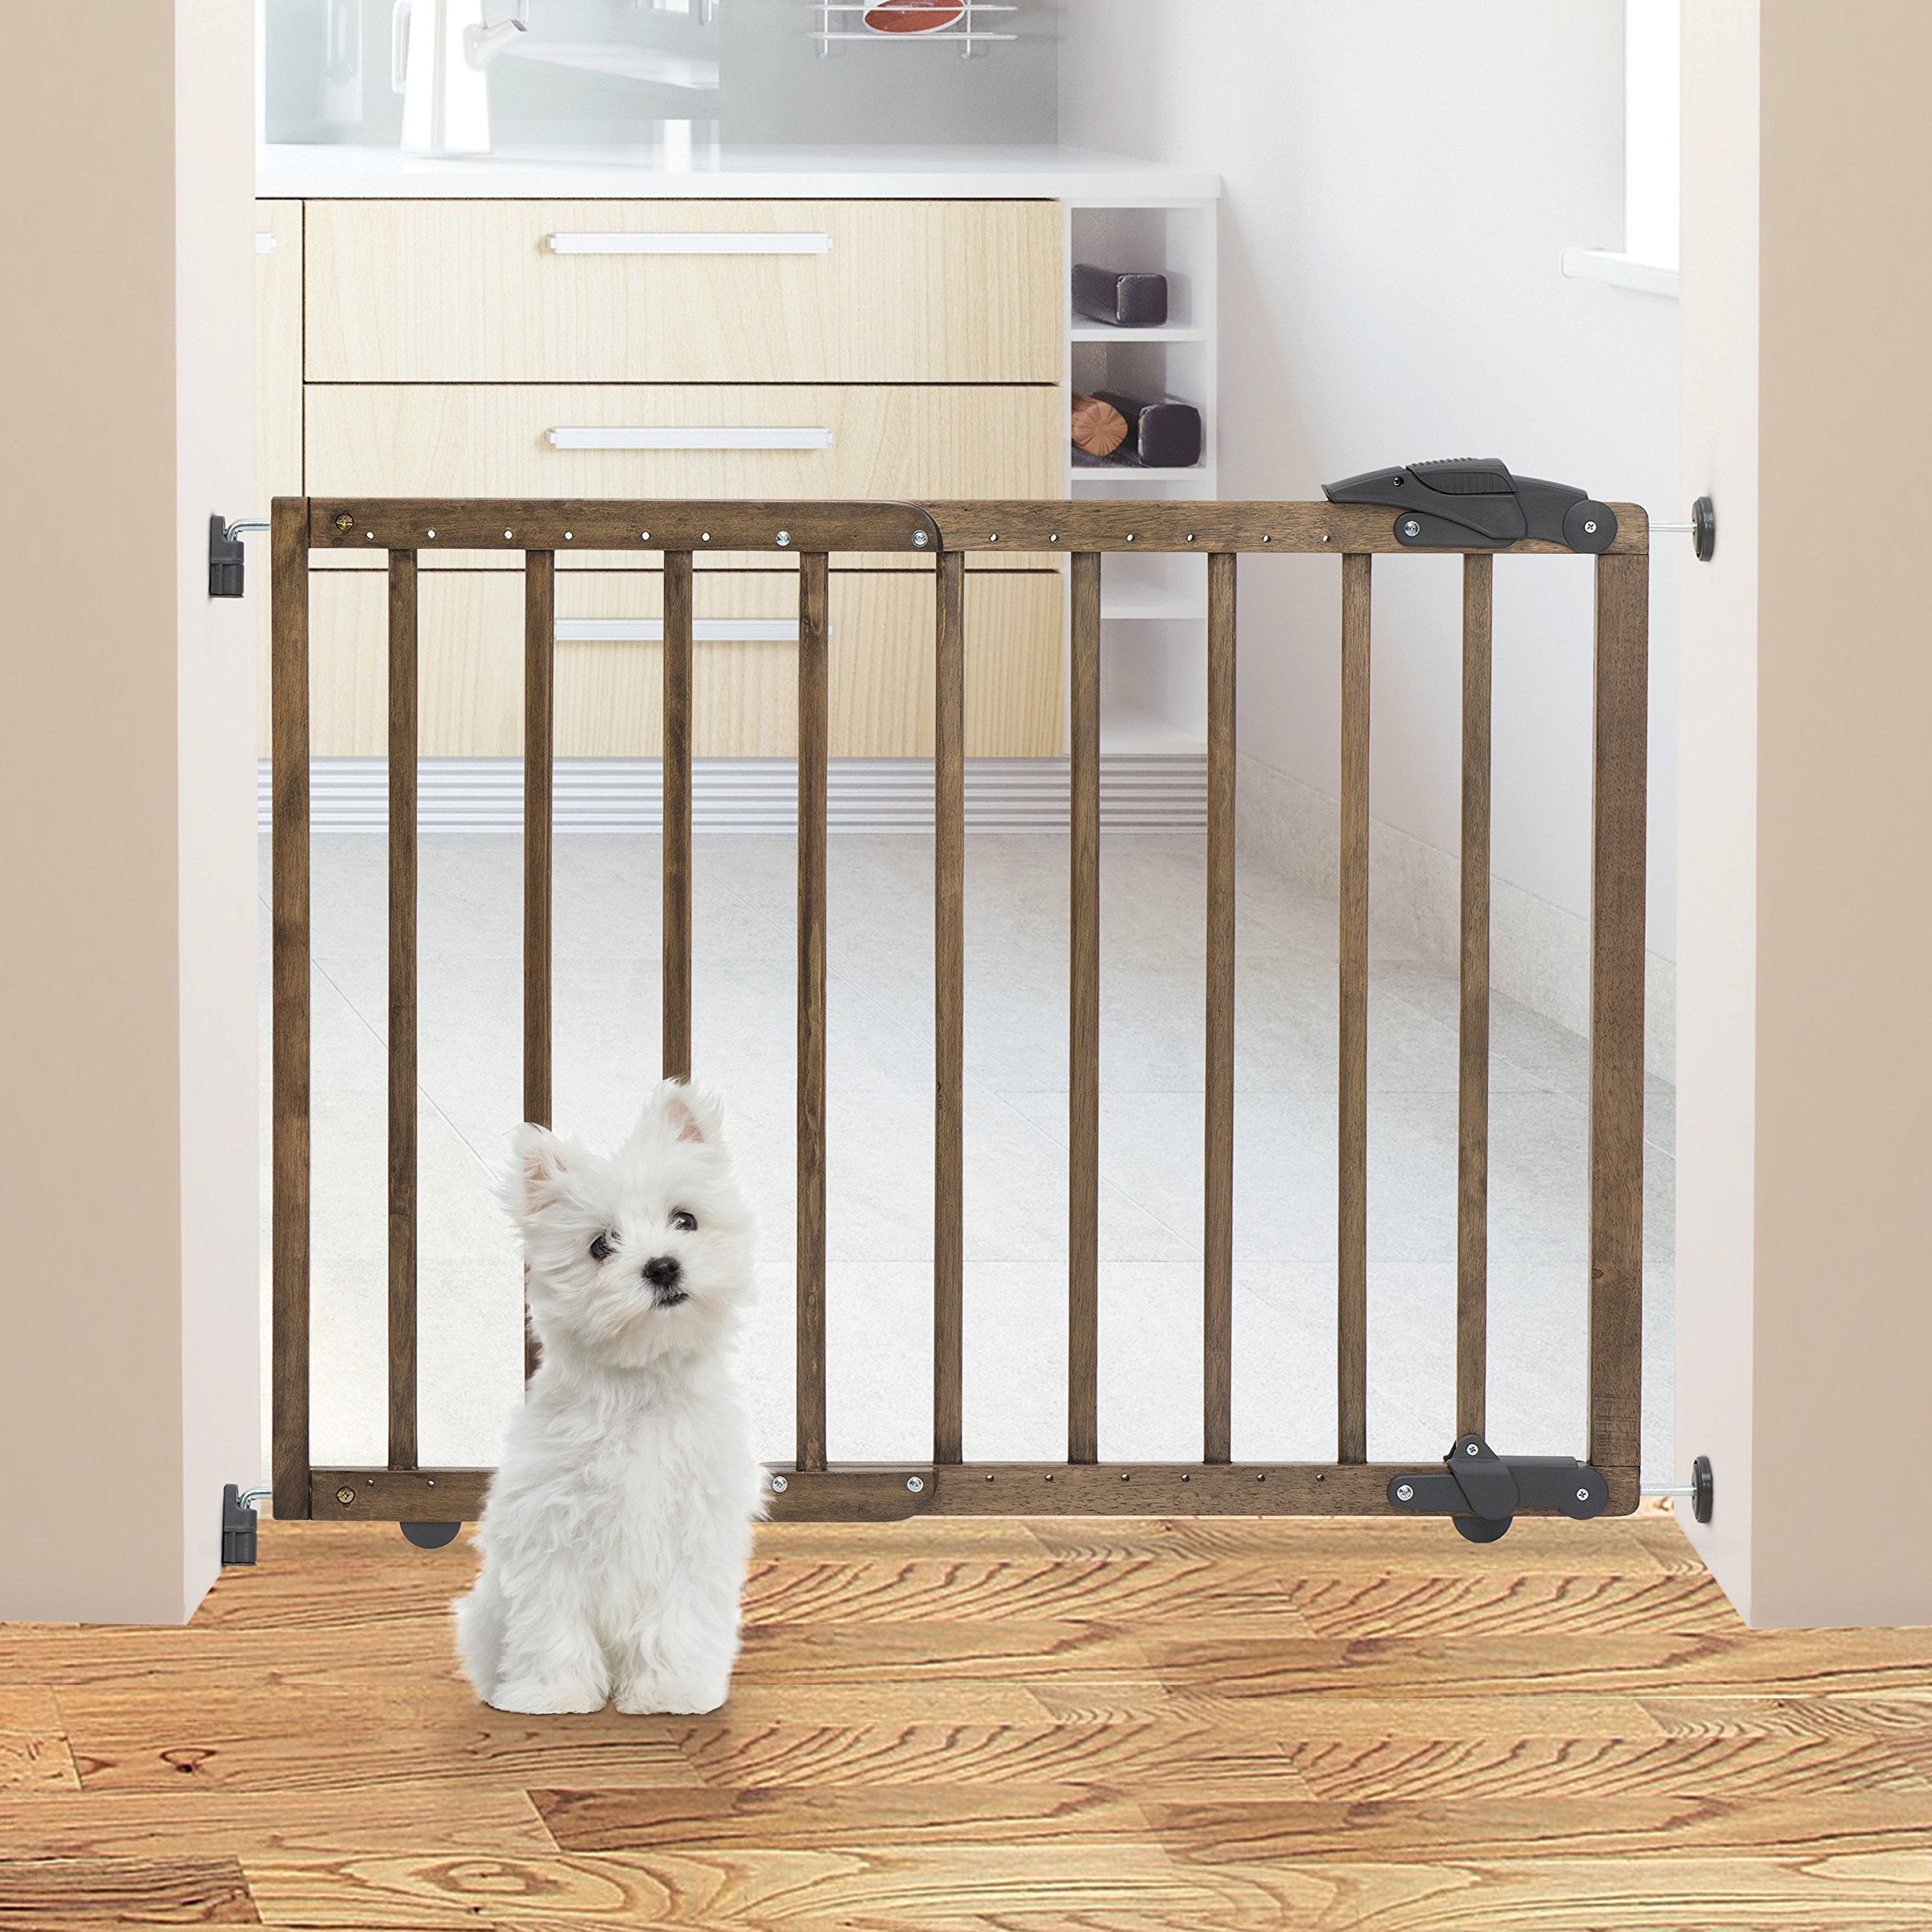 Dreambaby Nottingham 2 in 1 Gro-Gate by Dreambaby (Image #2)